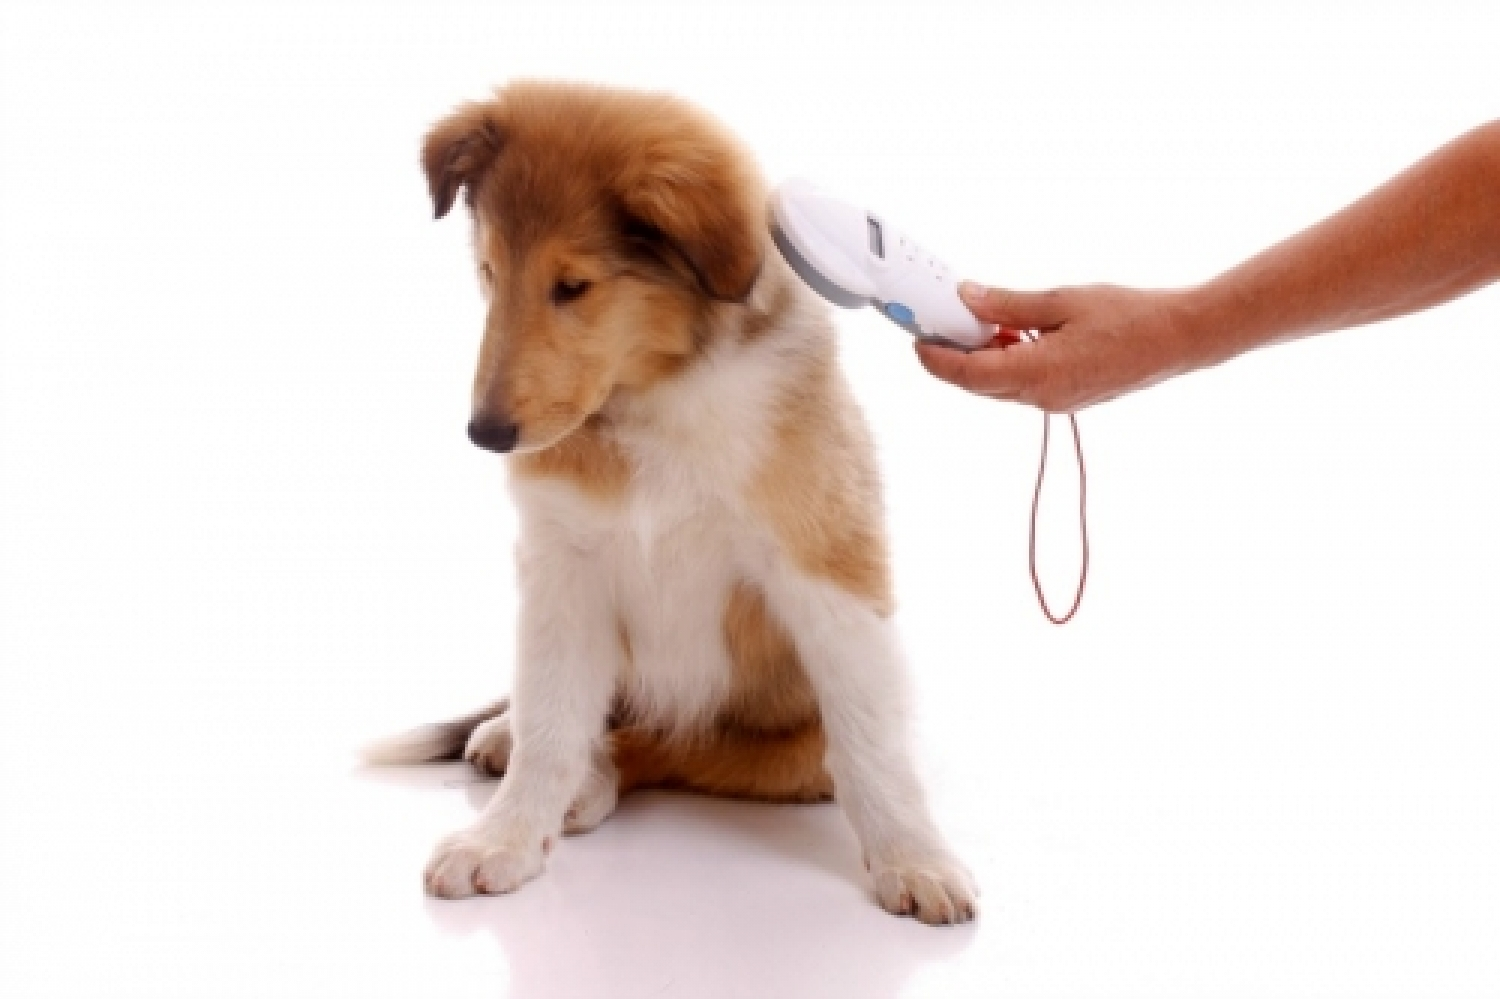 dog-being-scanned-for-microchip.jpg